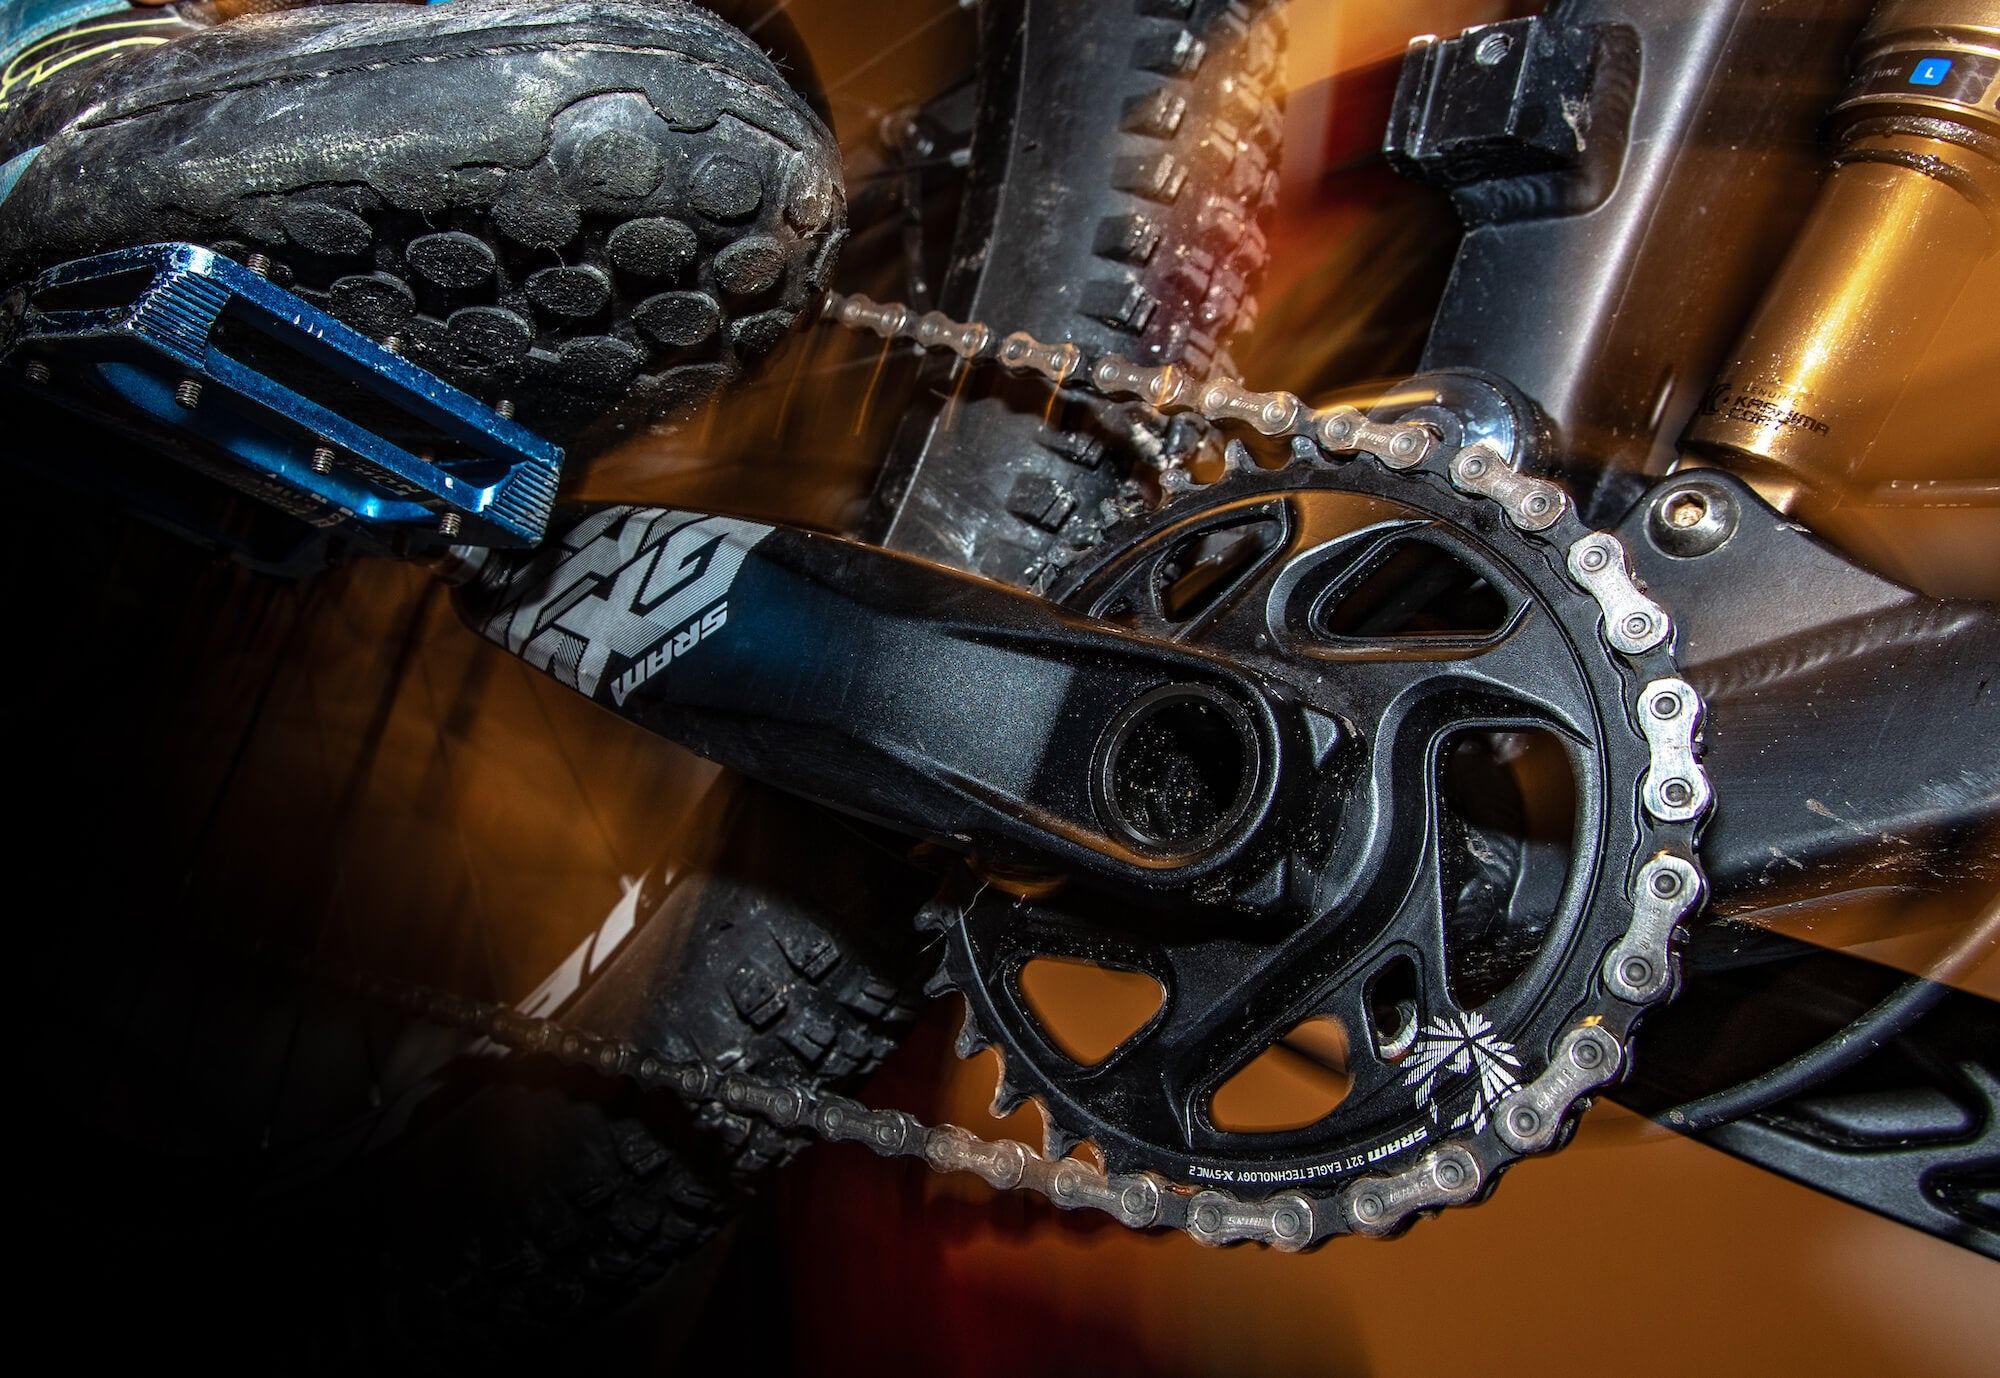 SRAM GX DUB Groupset Review